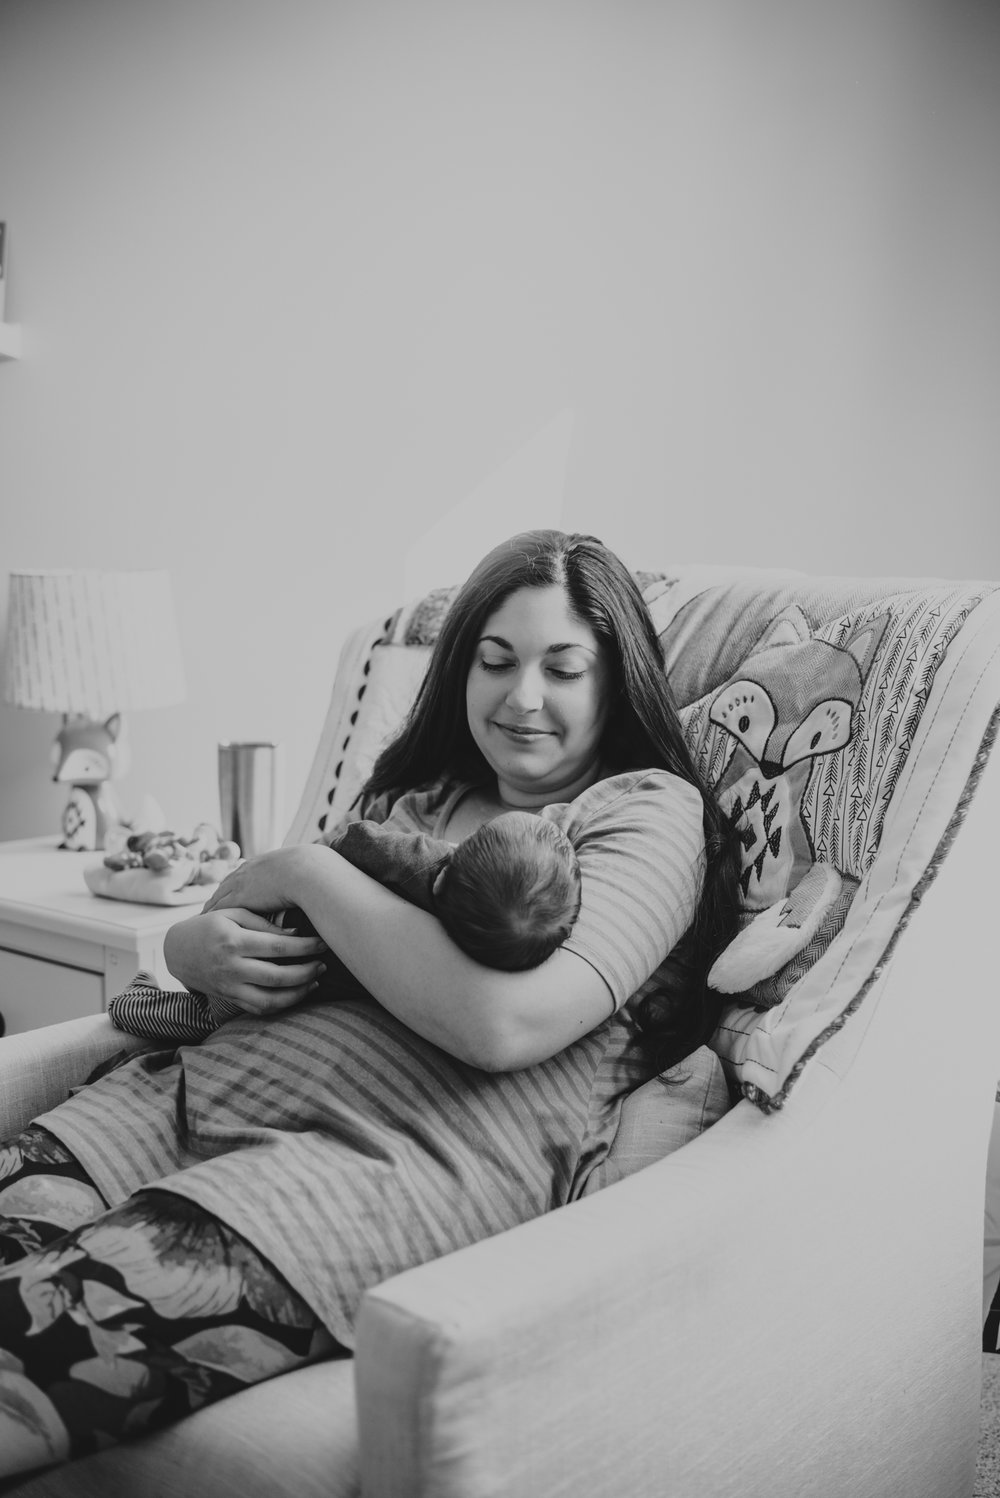 The new Mom cuddles her newborn son in a chair in the nursery in Wake Forest, a black and white image by Rose Trail Images.